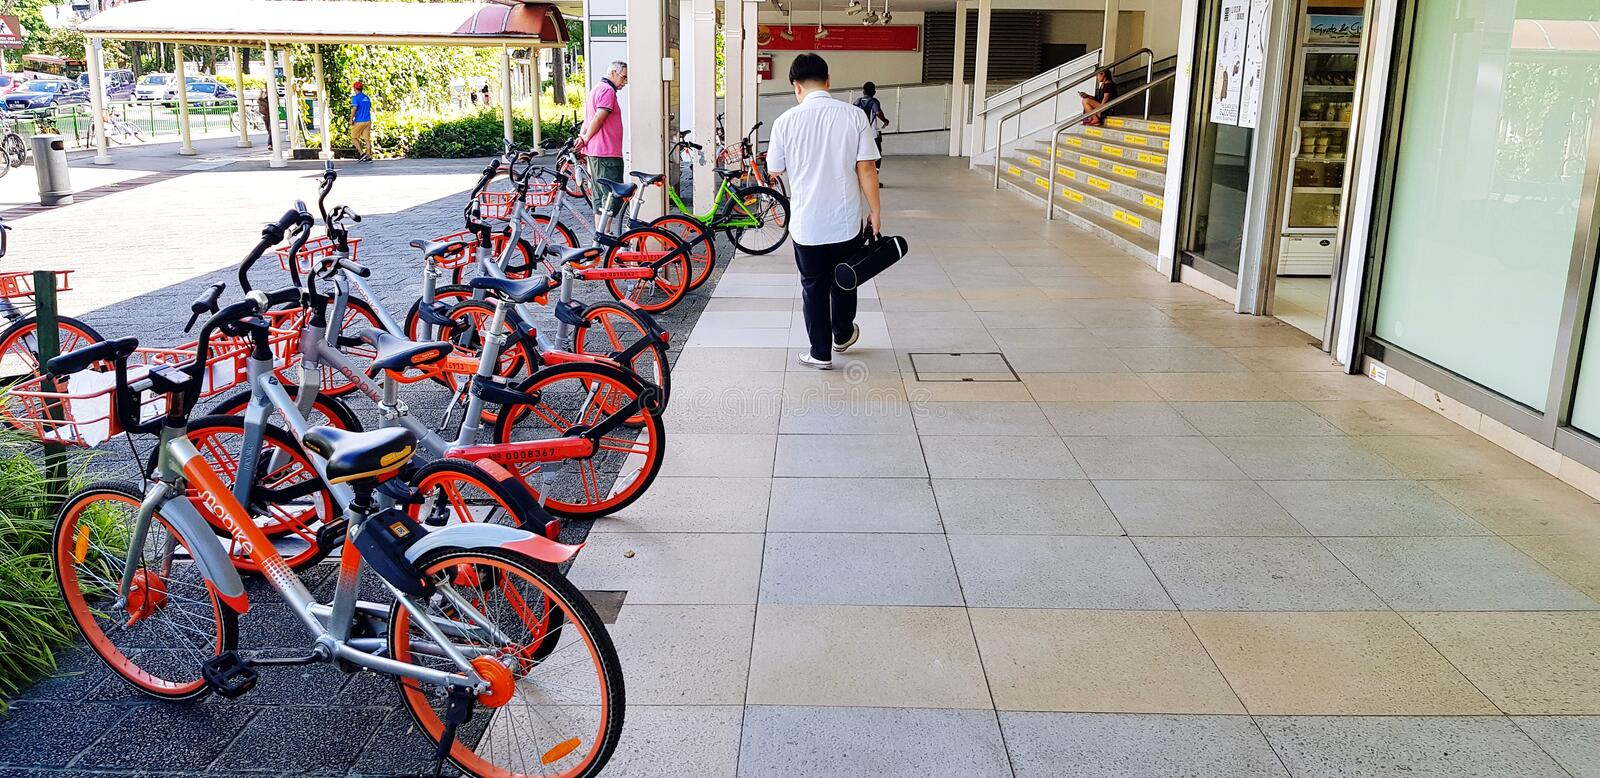 Singapore, Singapore- June 27, 2018: Many bicycle parked a lot for tourist and people for rent by using smart phone paying money f stock photo